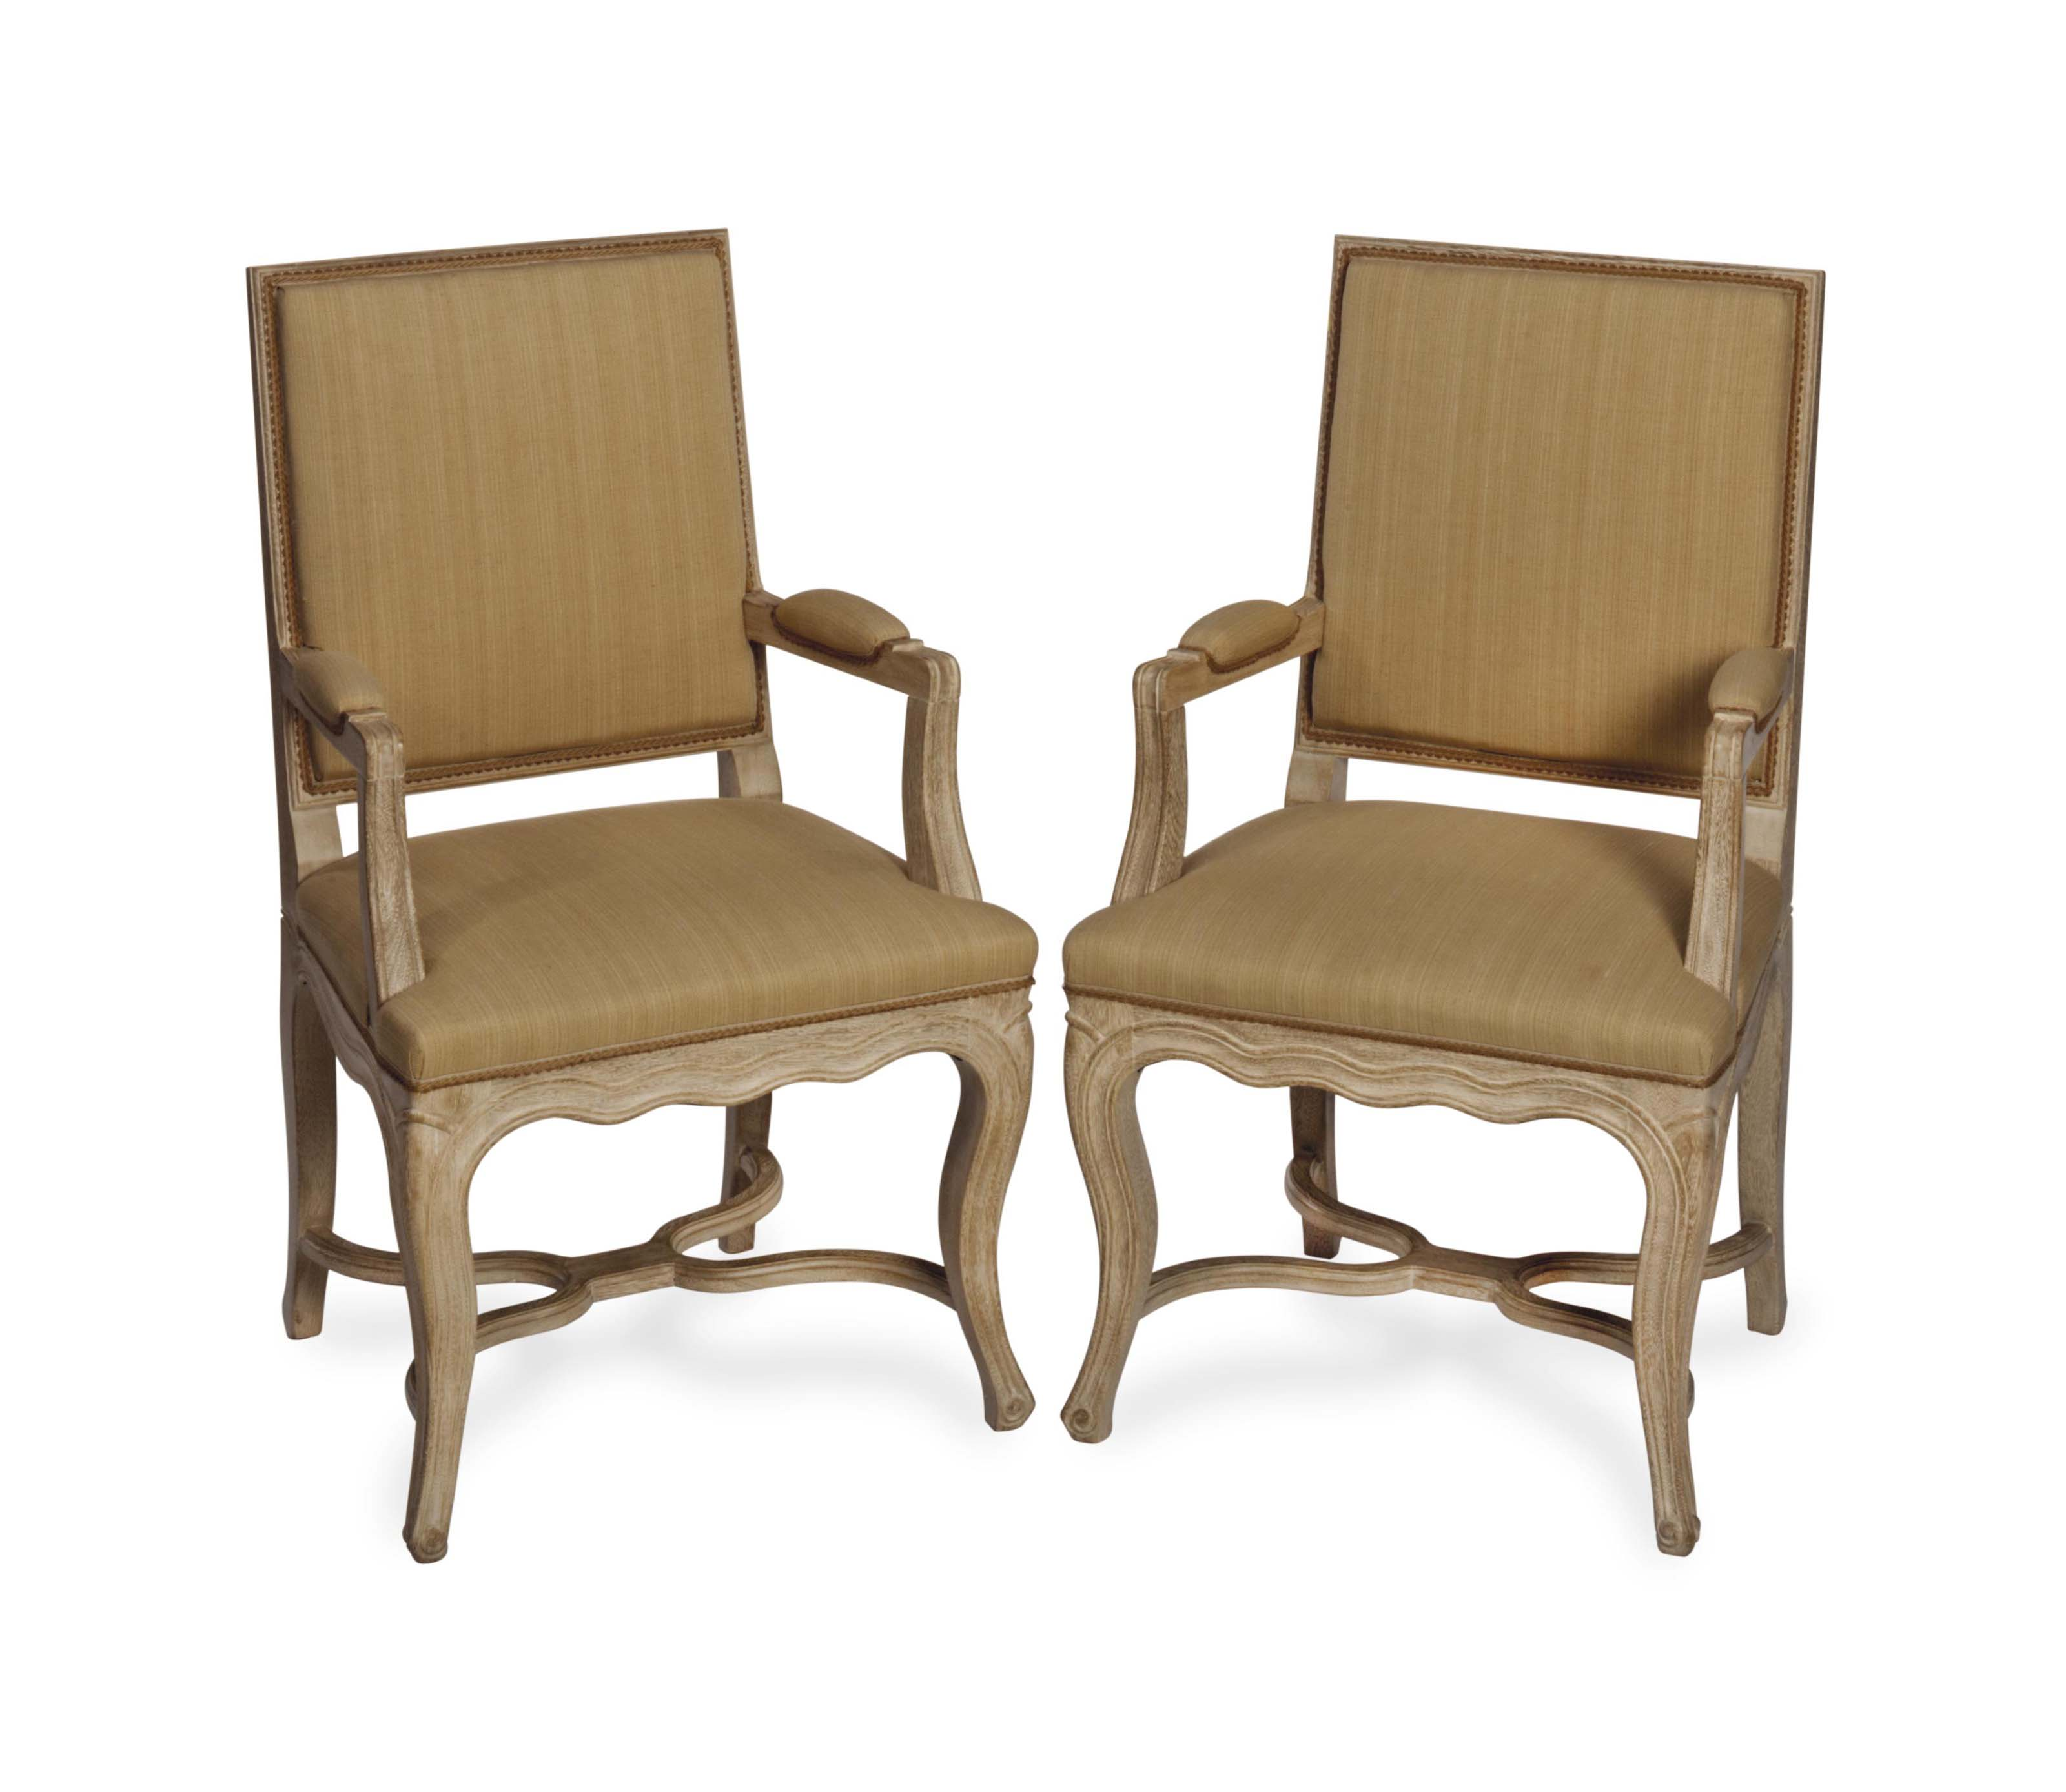 A PAIR OF LOUIS XV STYLE LIMED OAK FAUTEUILS COVERED IN BEIGE LINEN,